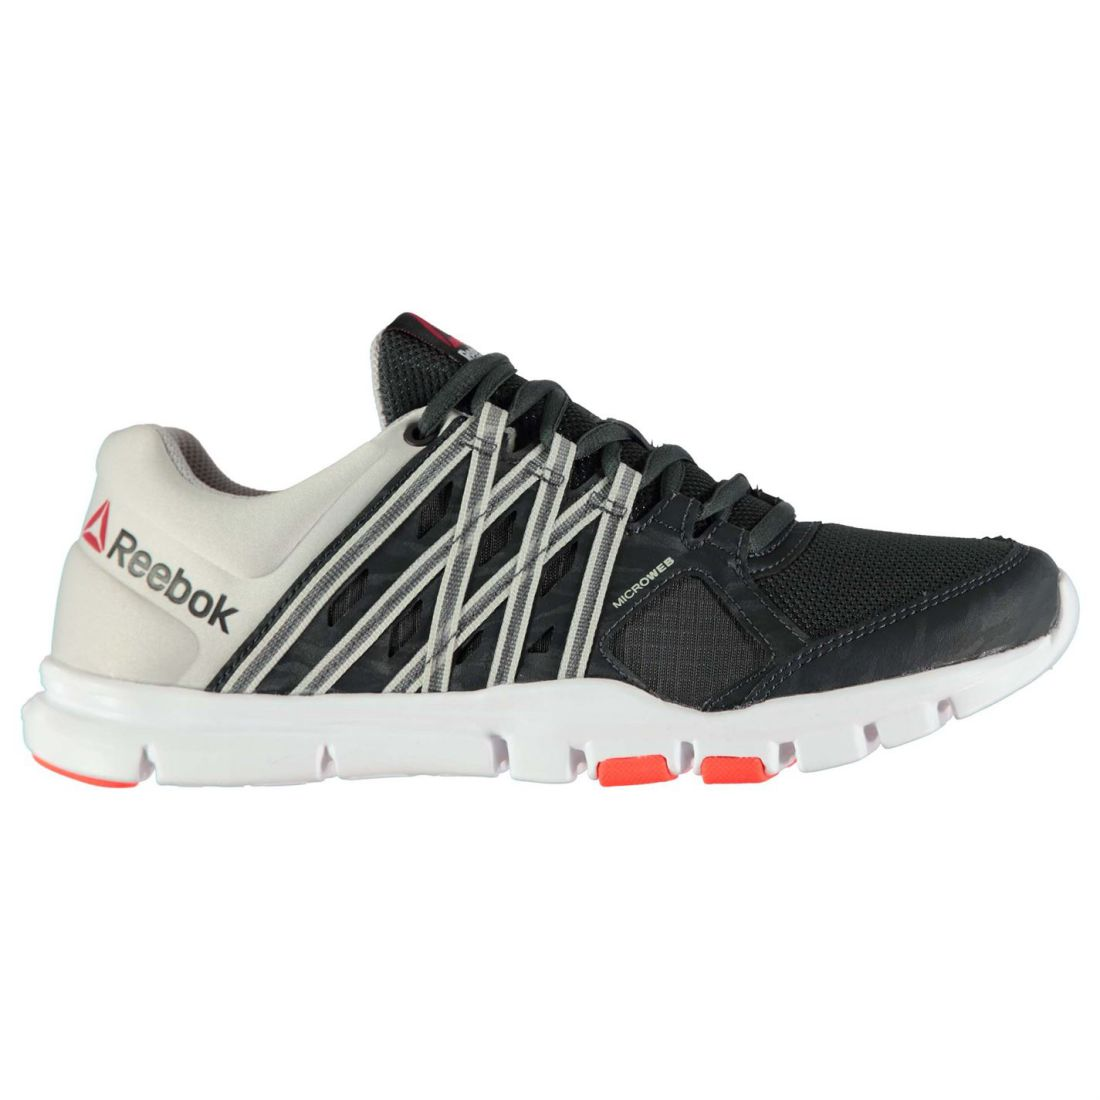 Reebok Mens Yourflex 8 Trainers Laced Textile Sports Shoes Memory Tech  Insole 79f5d9a88